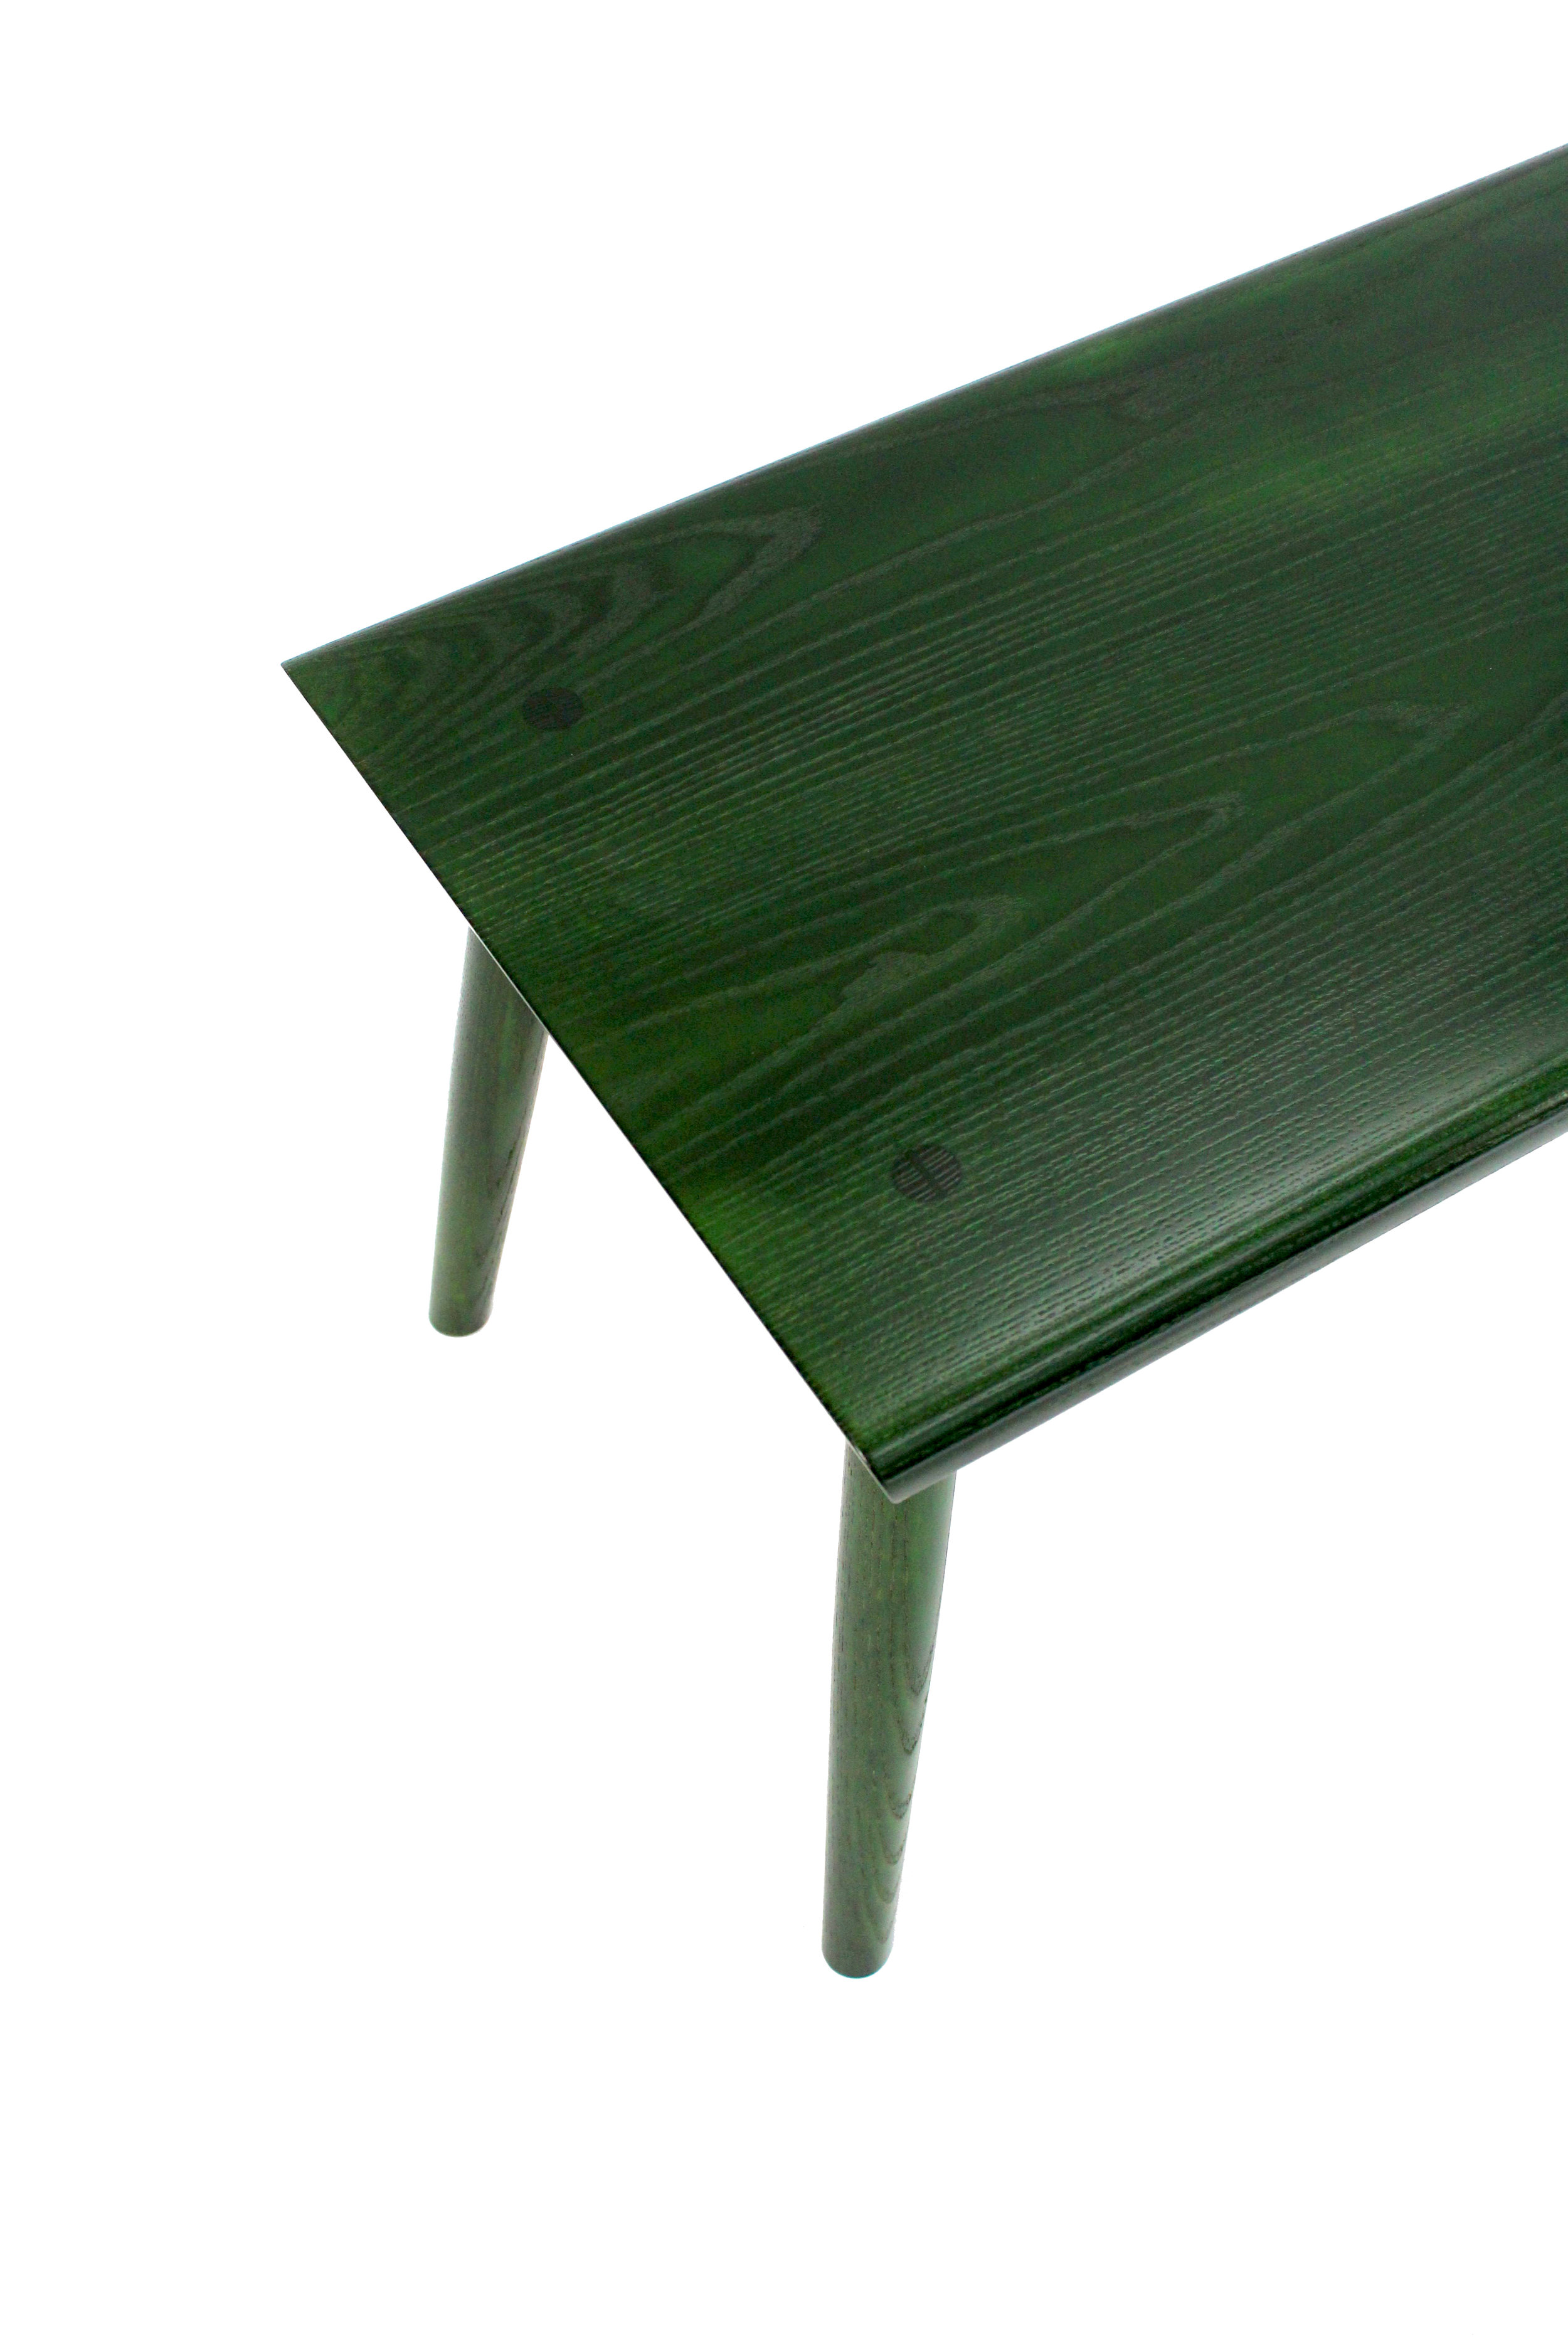 O&G Studio Buck Bench X Base Trestle Dining Bench 54 Loveseat Entry Bench Windsor Contemporary Side Americana Seating Modern Designed Design Interior Seating Ebonized Ash Hunter Stained